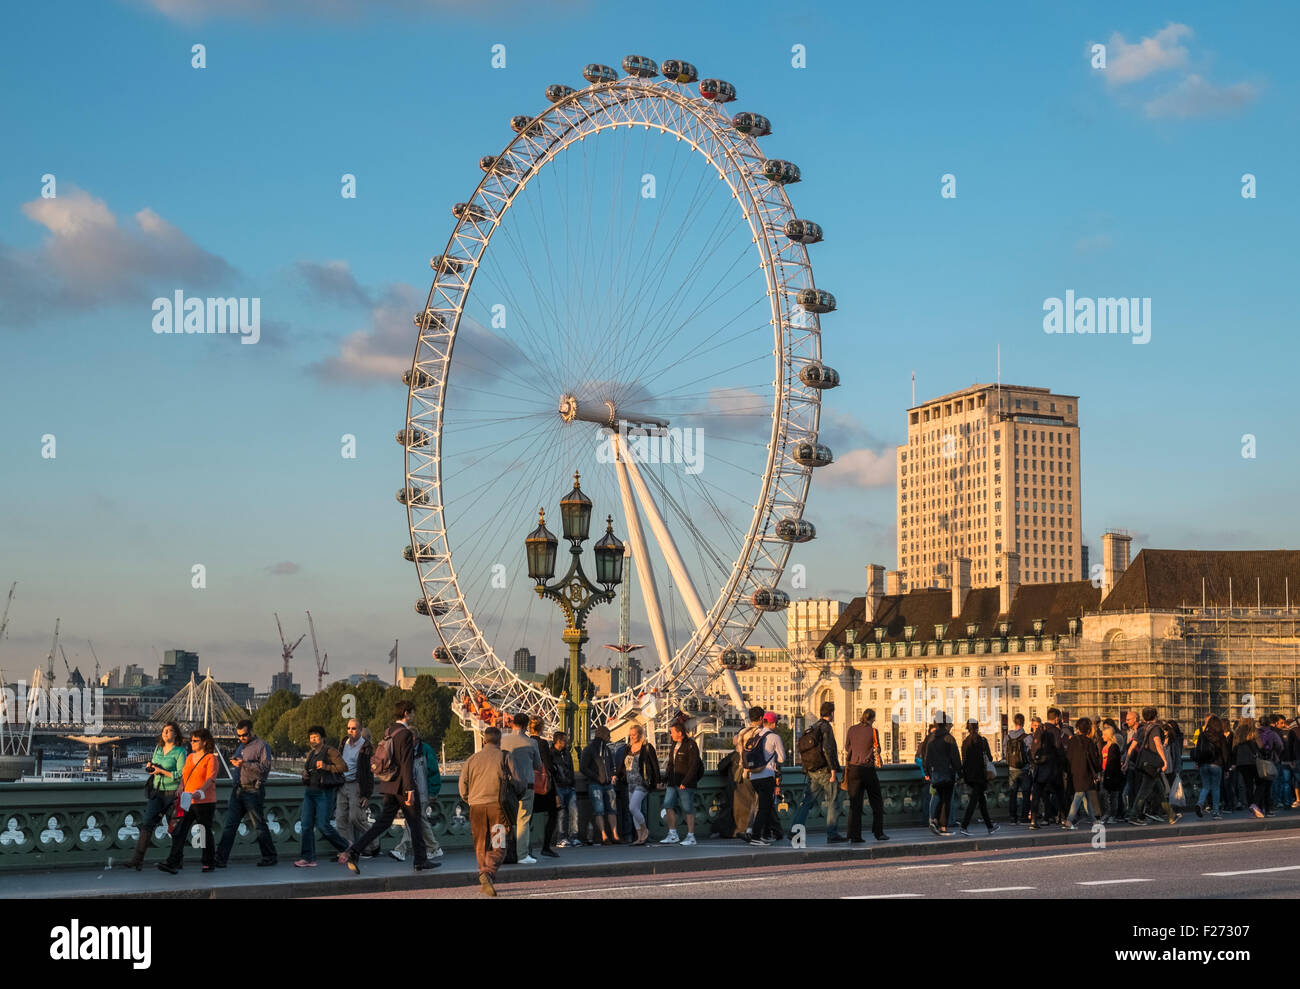 London Eye viewed from popular tourist spot near Westminster Bridge, London, England UK - Stock Image